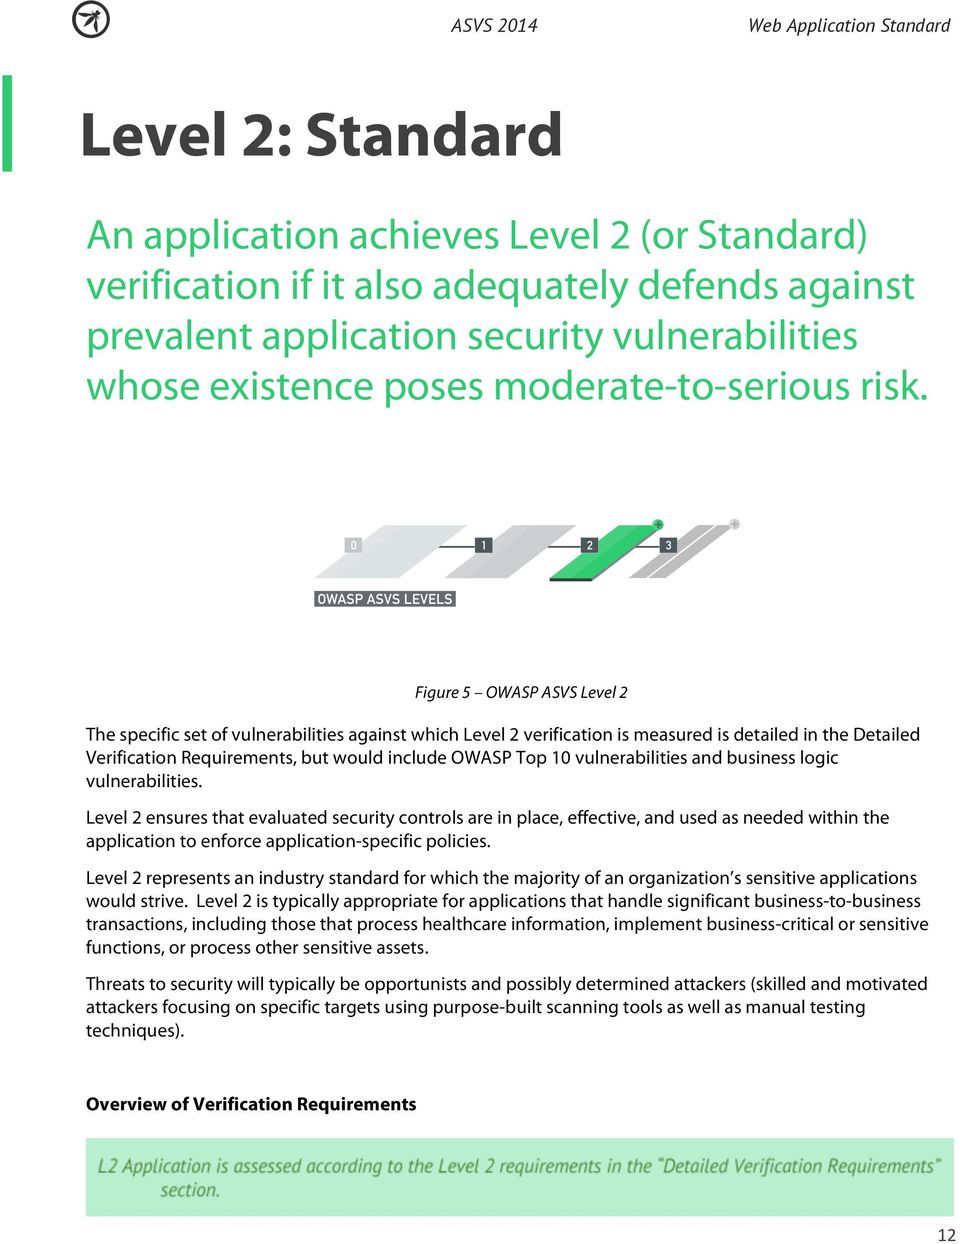 Figure 5 OWASP ASVS Level 2 The specific set of vulnerabilities against which Level 2 verification is measured is detailed in the Detailed Verification Requirements, but would include OWASP Top 10